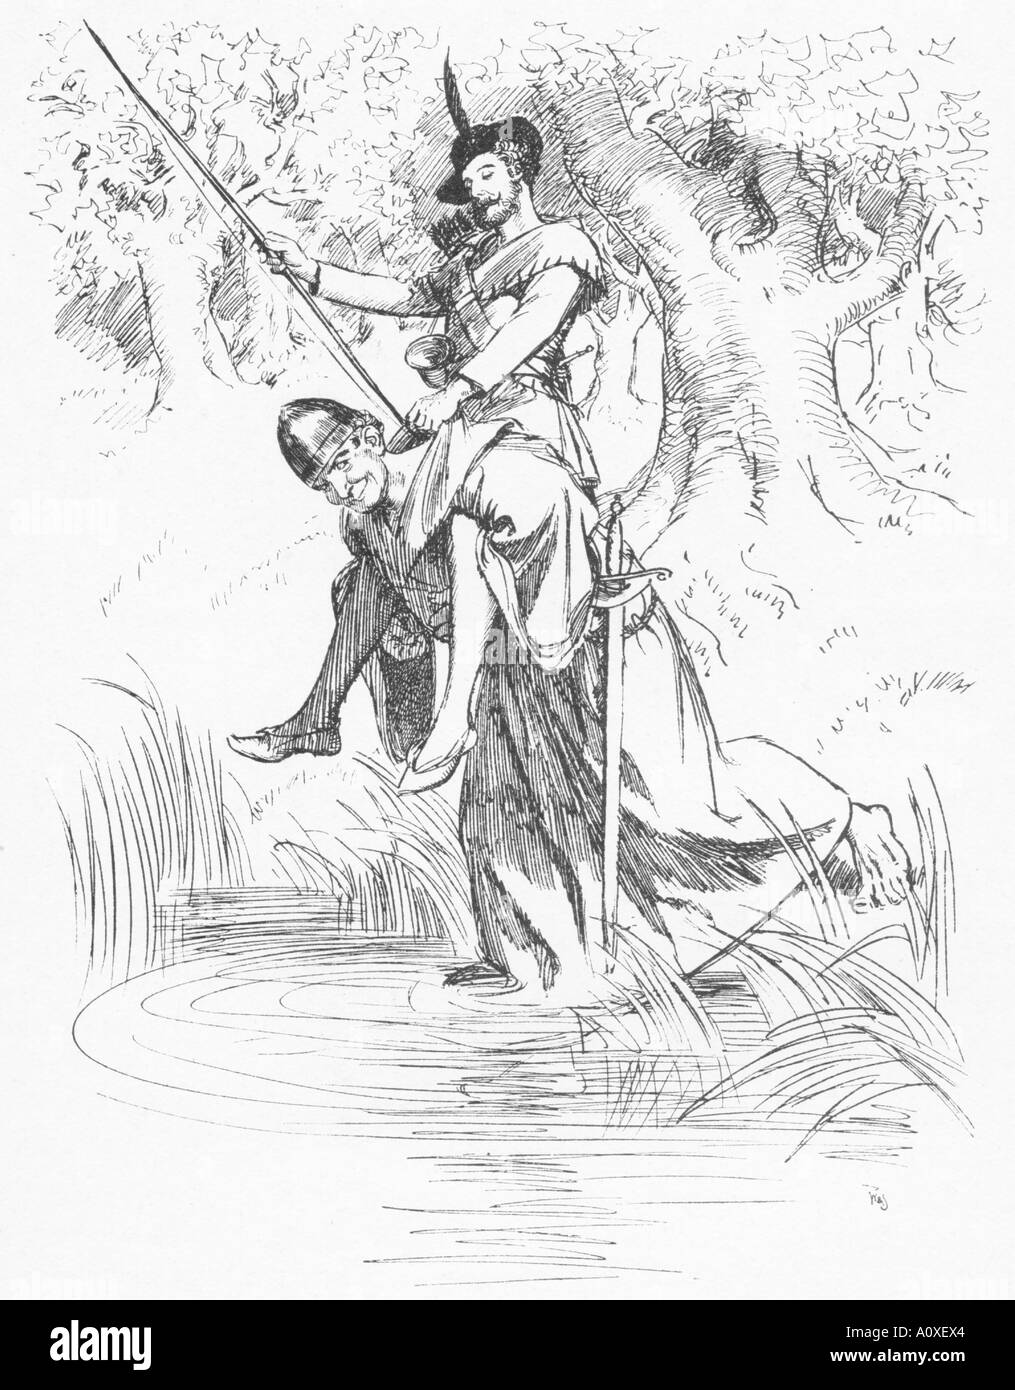 Line drawing by Hugh Thomson 1860 1920 in Highways and Byways in Yorkshire; Little John Carrying Robin Hood across - Stock Image